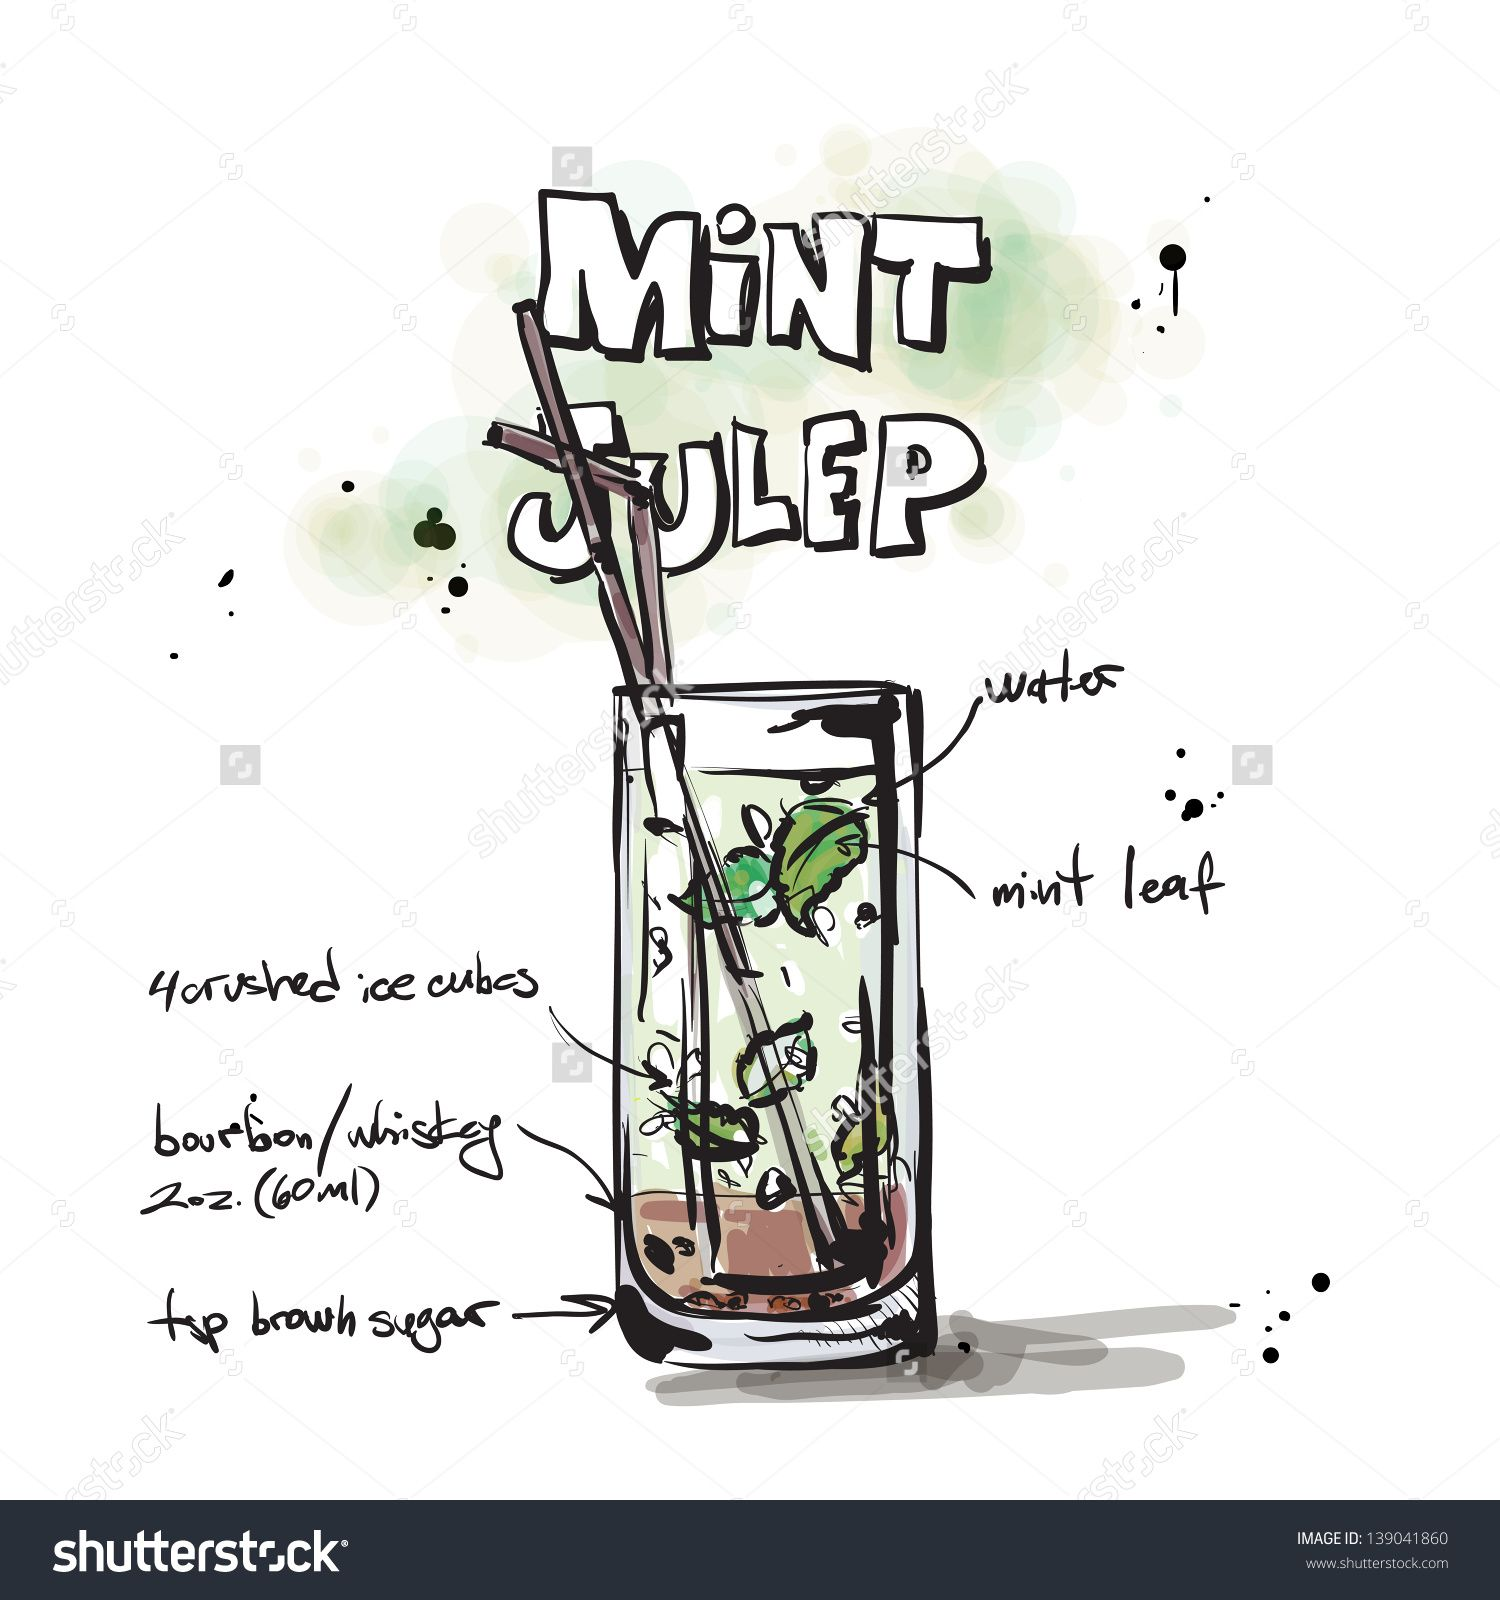 Hand Drawn Illustration Of Cocktail. Vector Collection. - 139041860 : Shutterstock